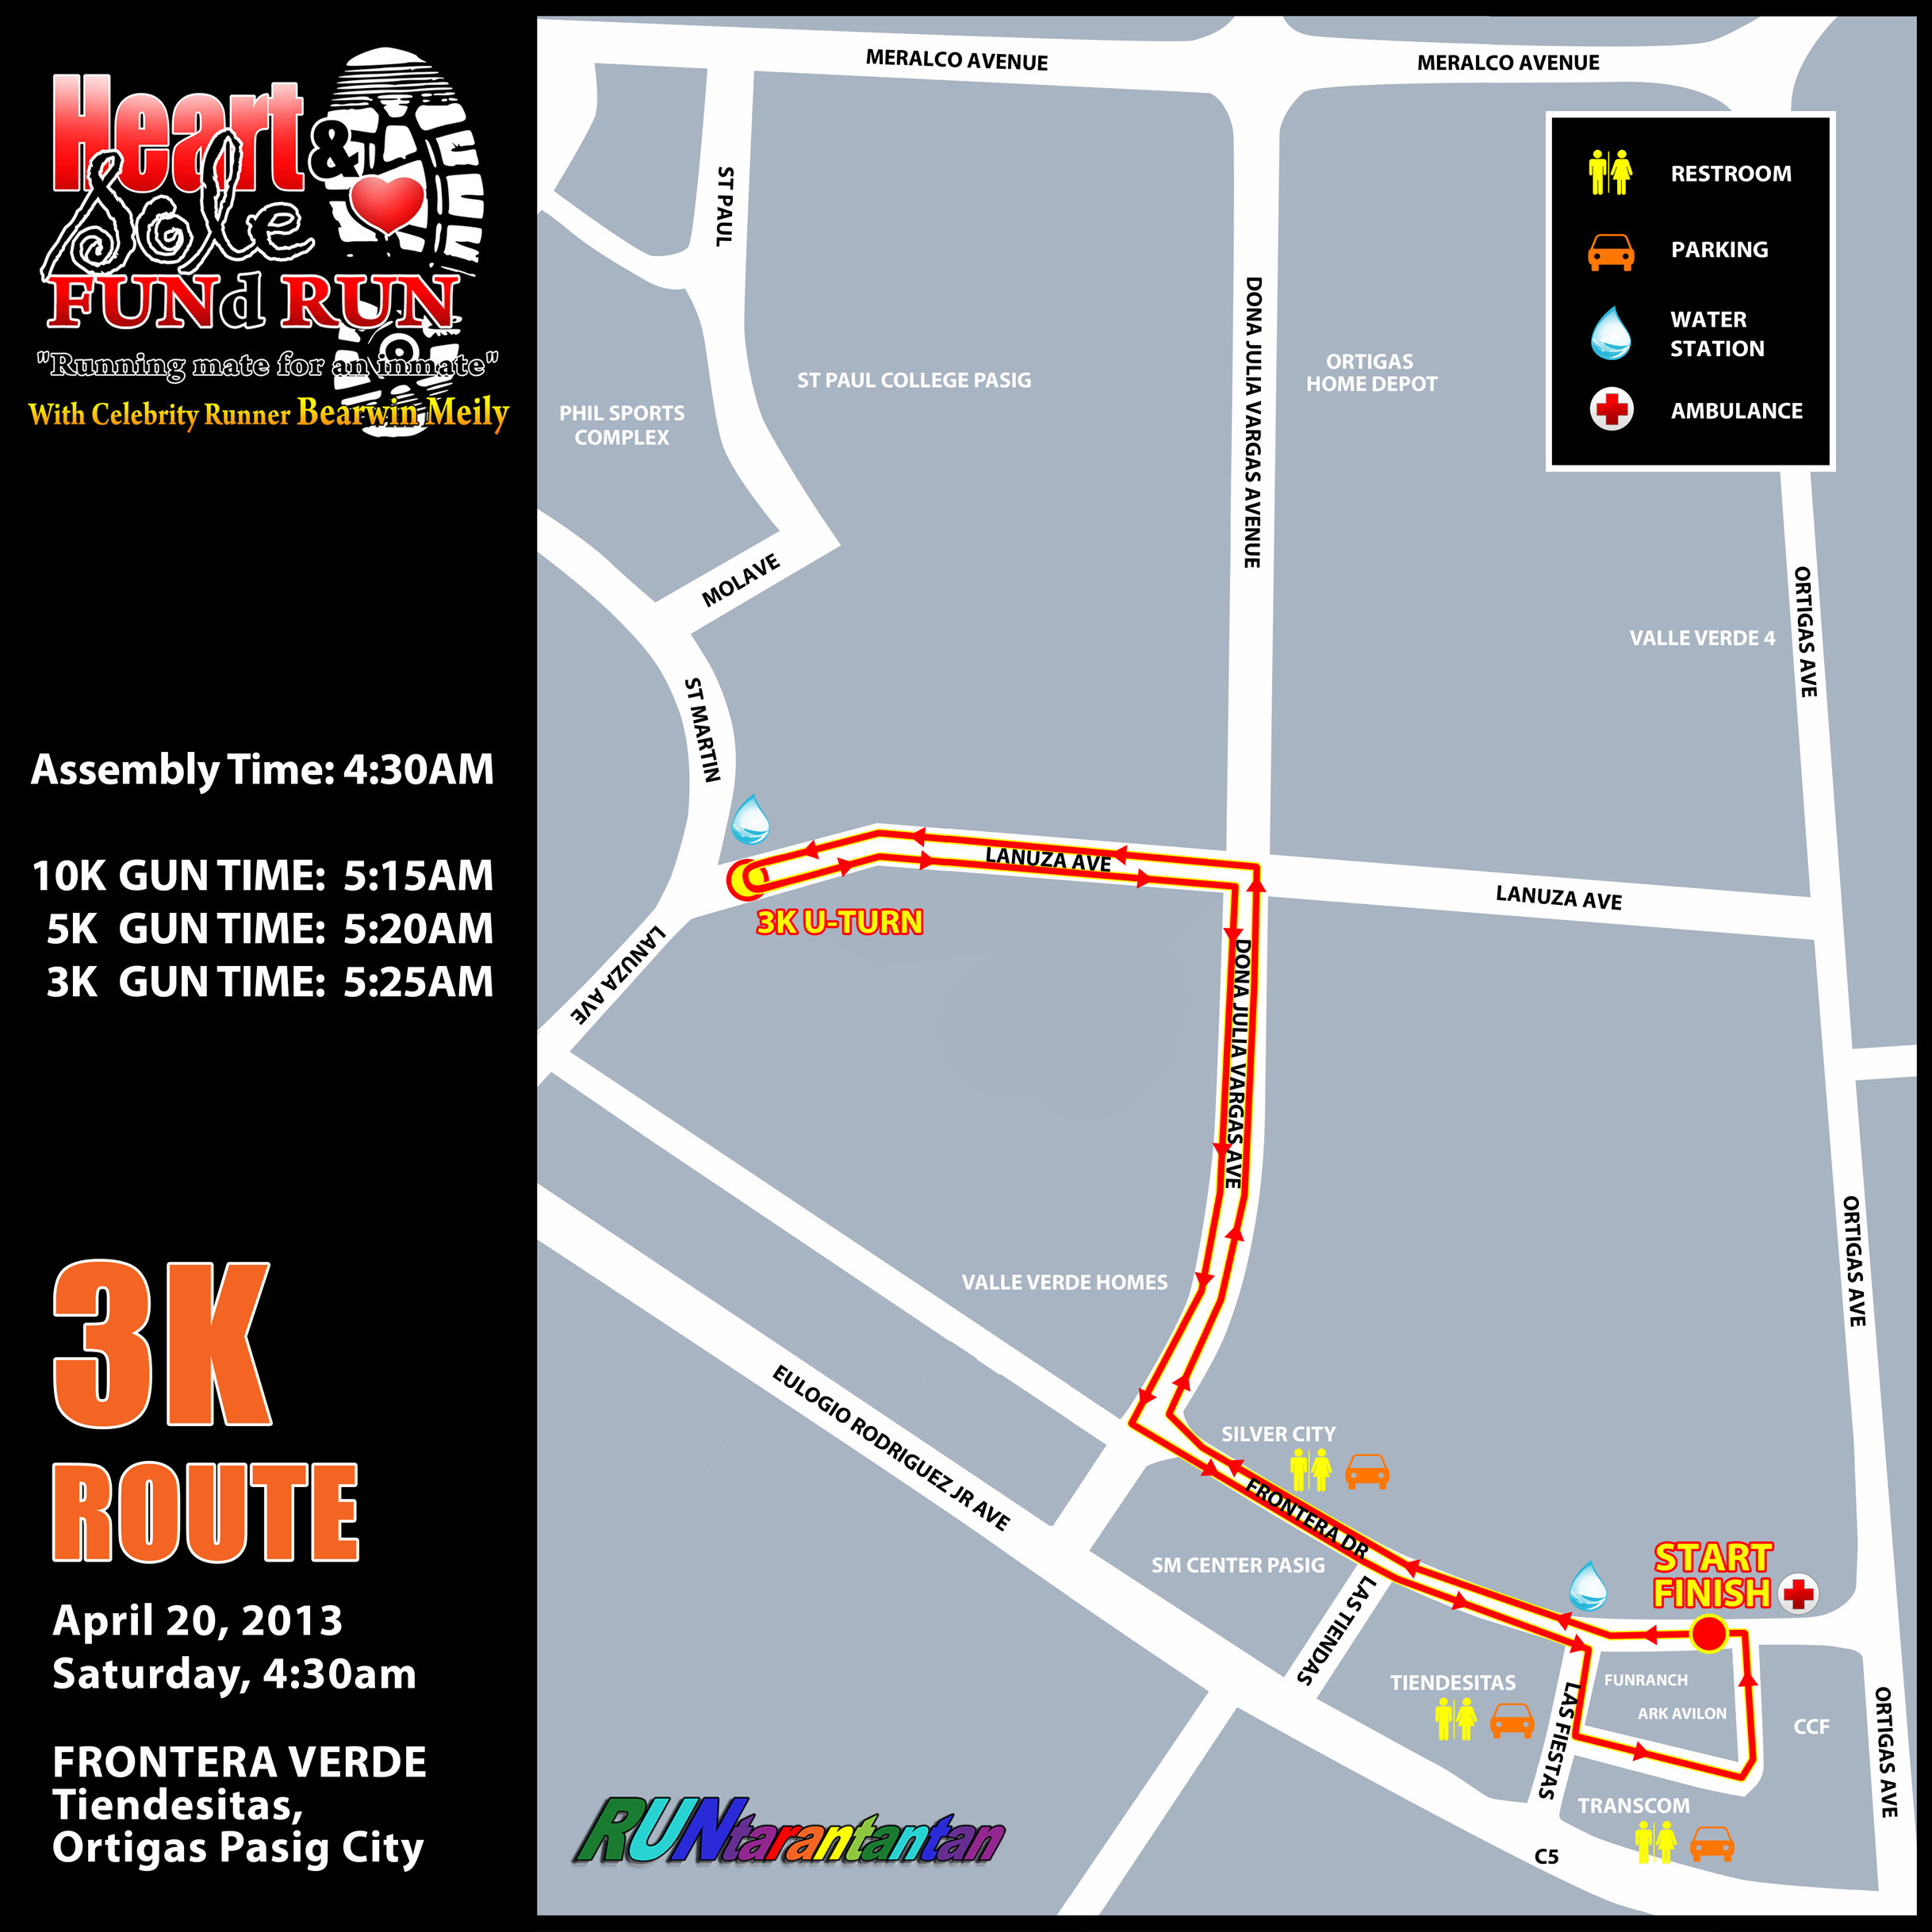 heart-and-sole-fund-run-2013-route-map-3k